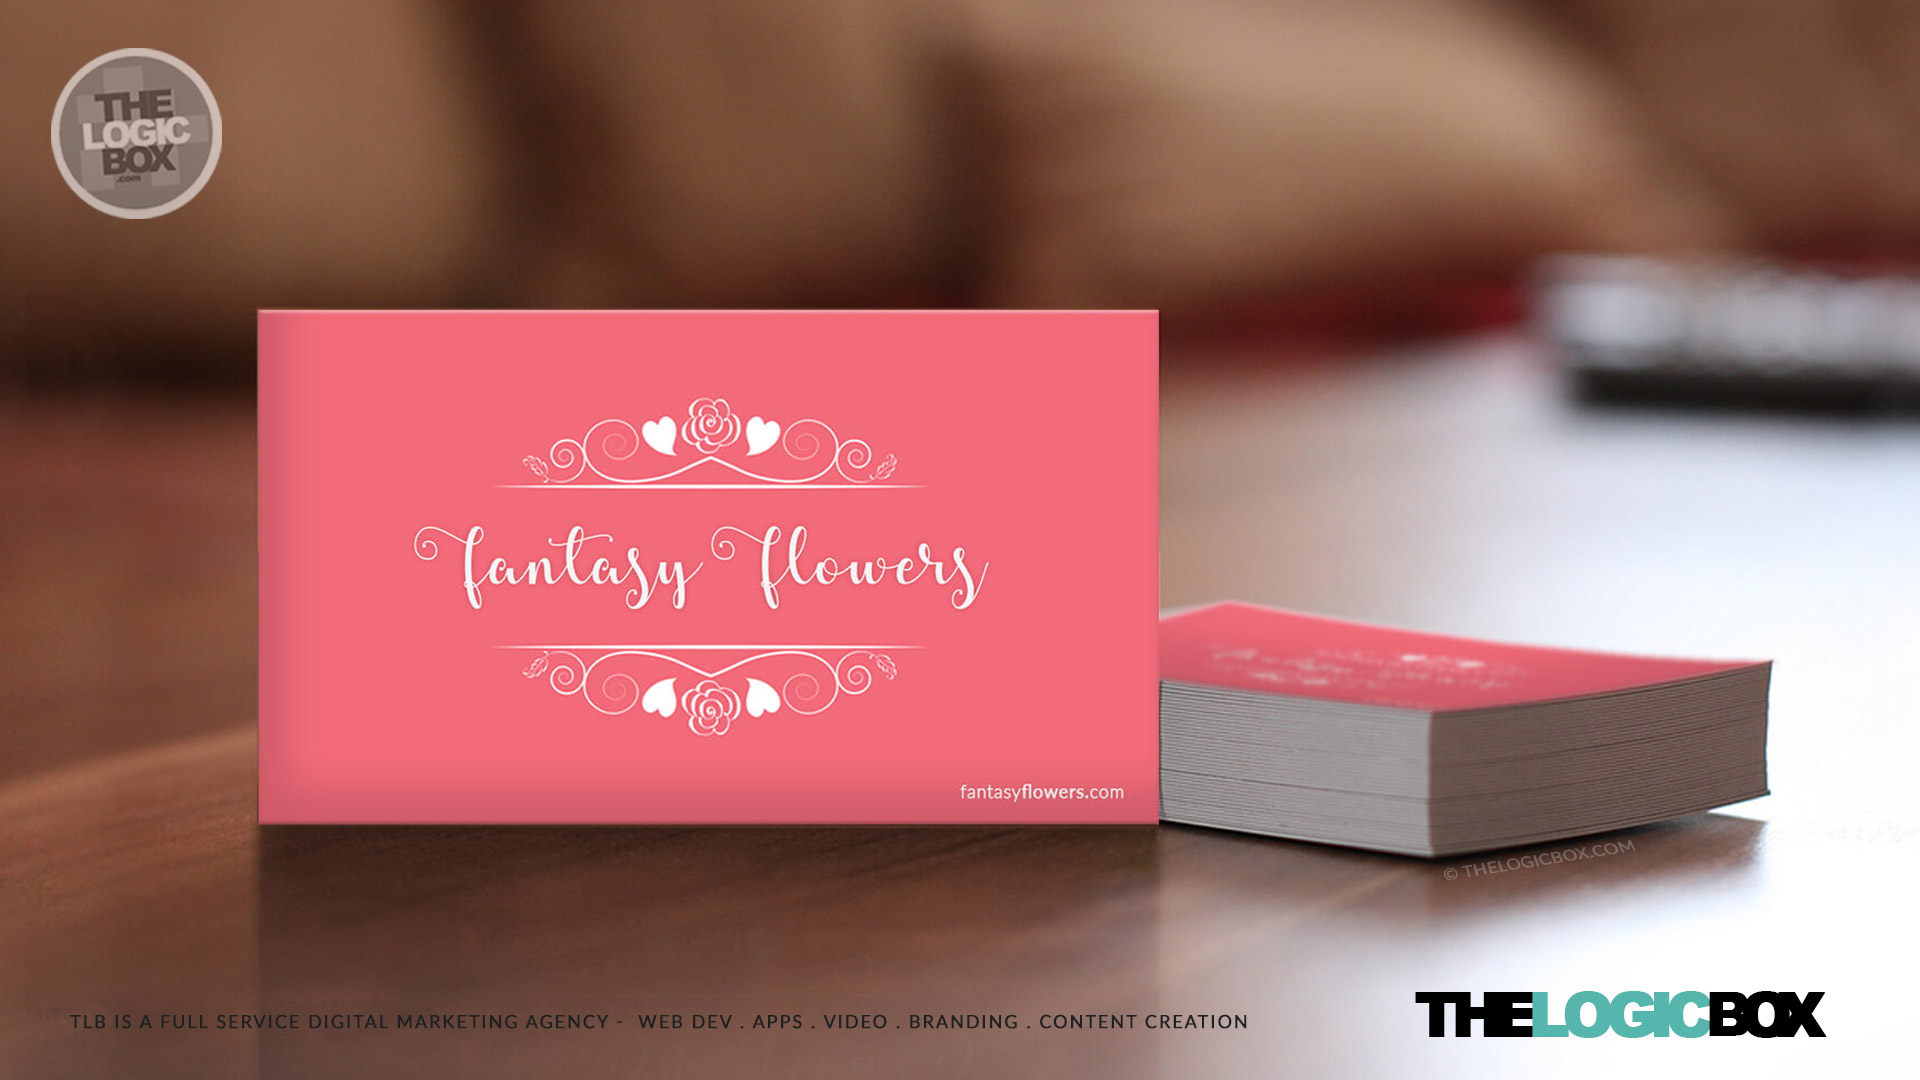 Business-Card-the-logic-box-agency-1-fantasyflowers